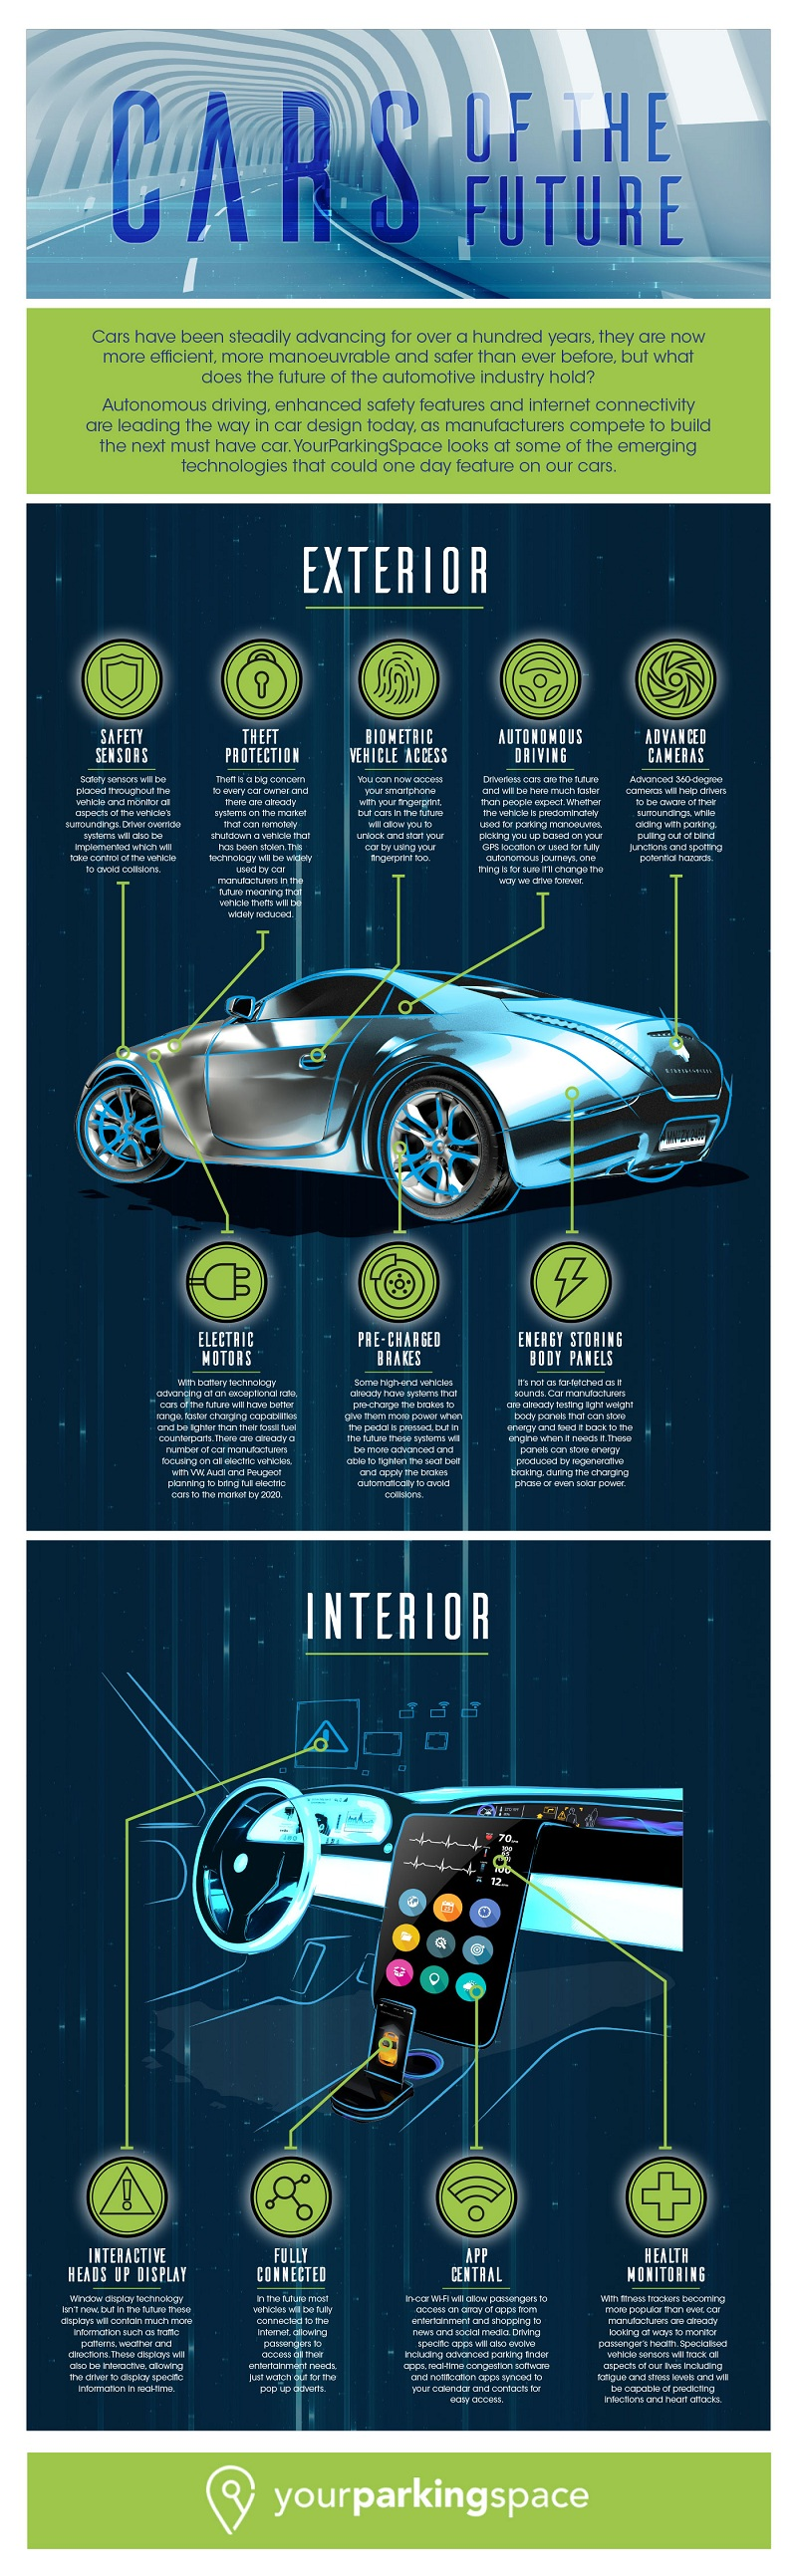 Future Cars Infographic